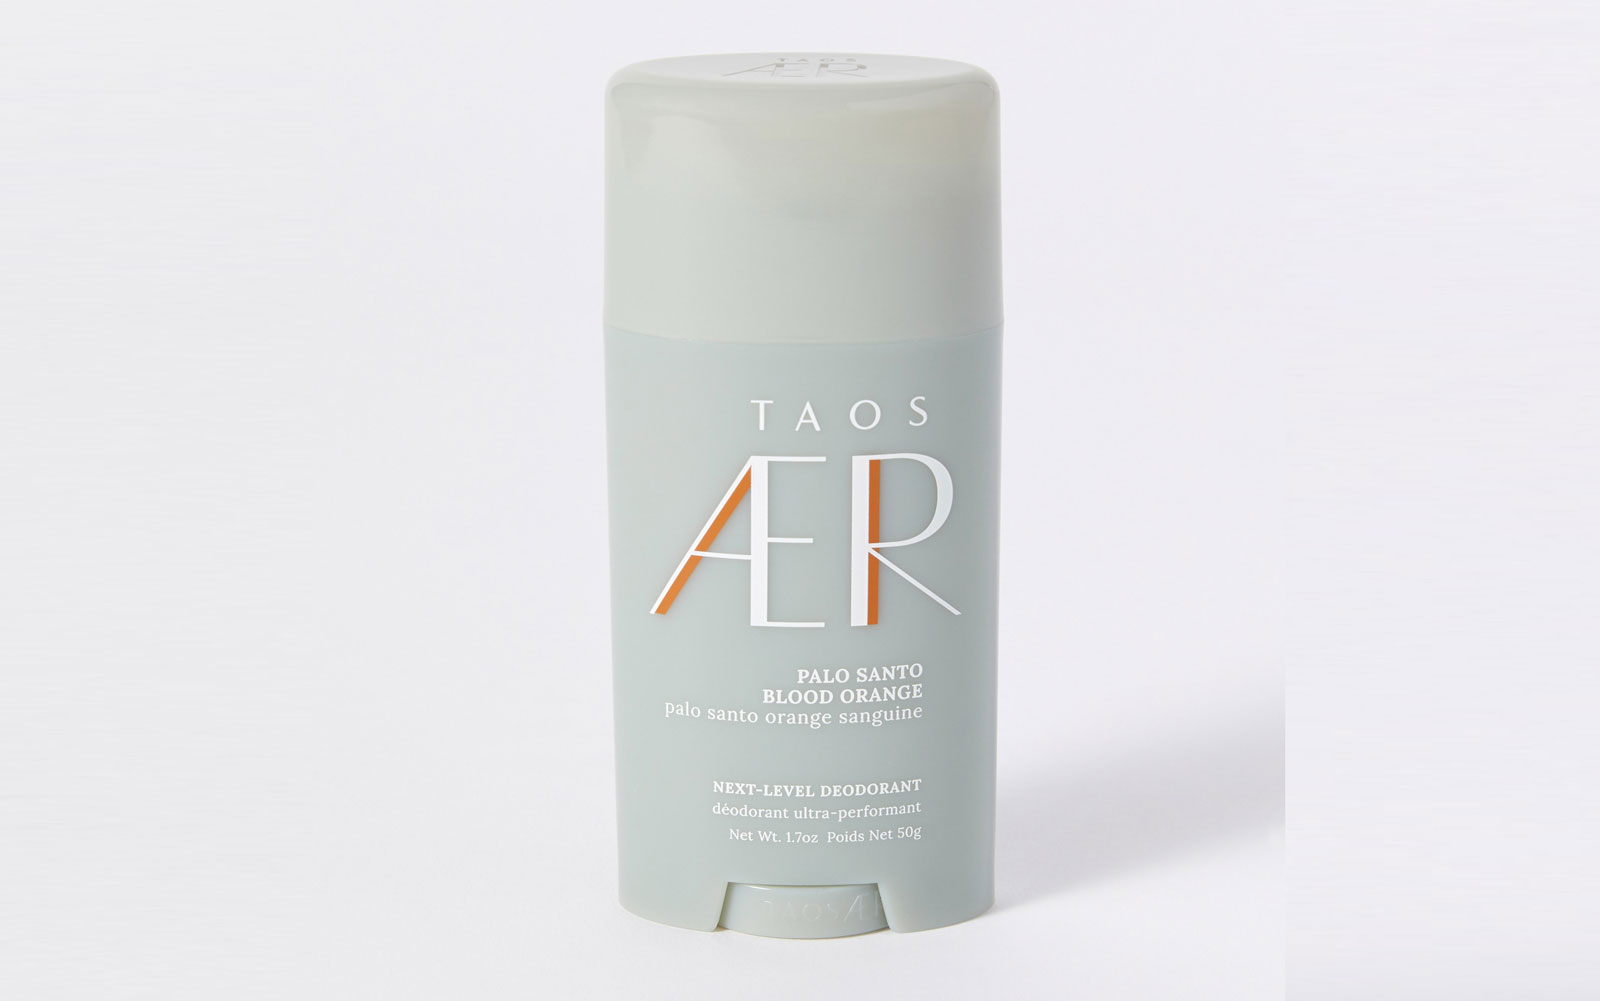 Taos AER Next-Level Deodorant